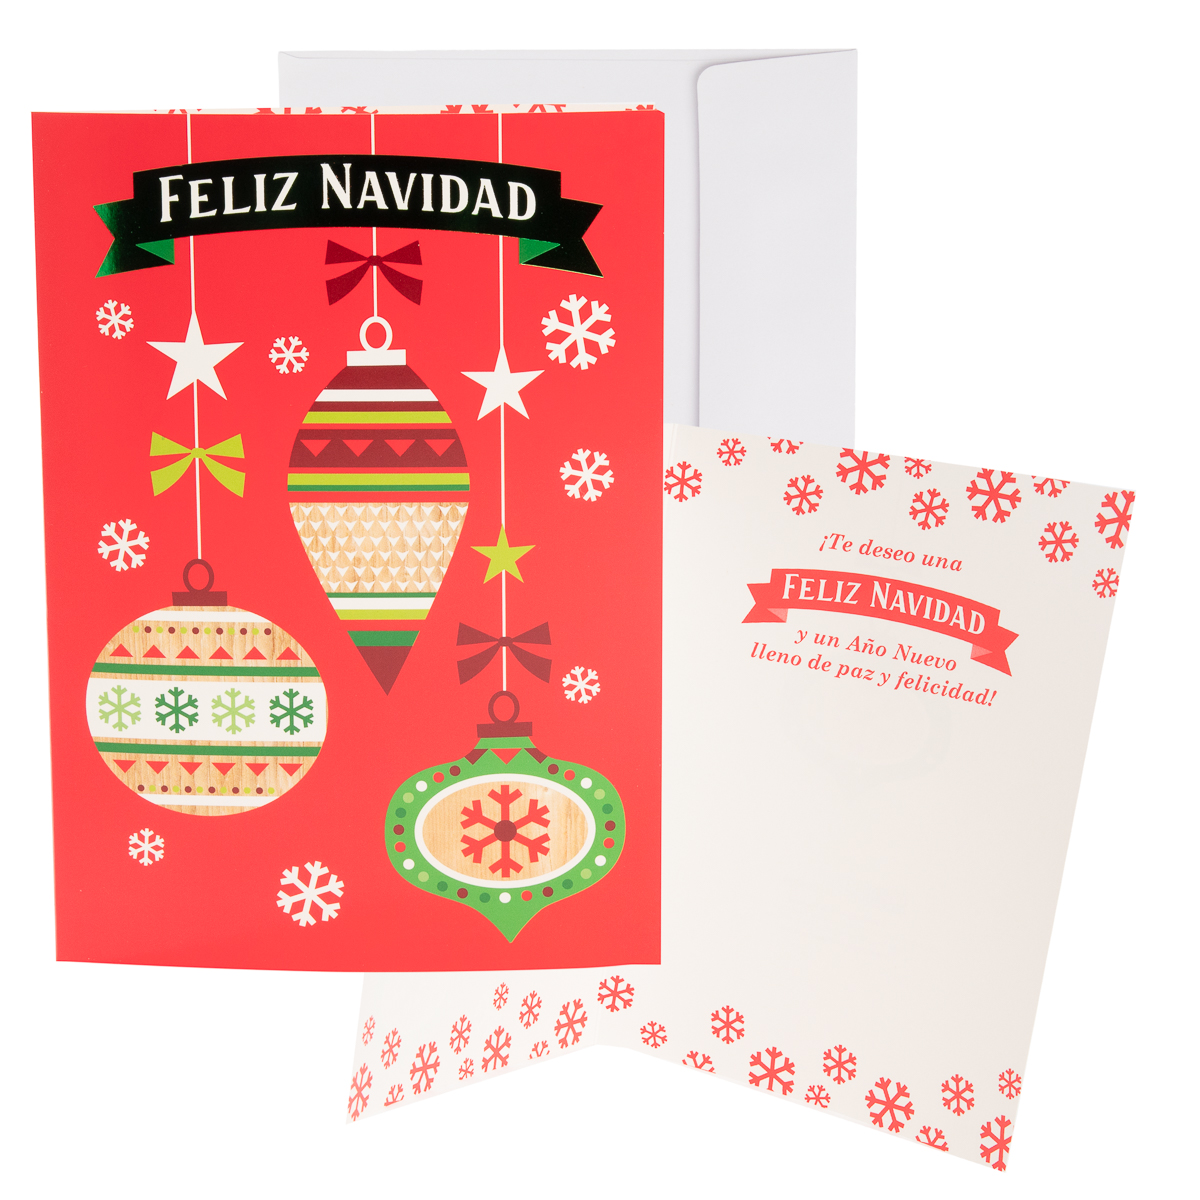 48pk-Merry-Christmas-Cards-Bulk-Assortment-Holiday-Card-Pack-with-Foil-amp-Glitter thumbnail 25